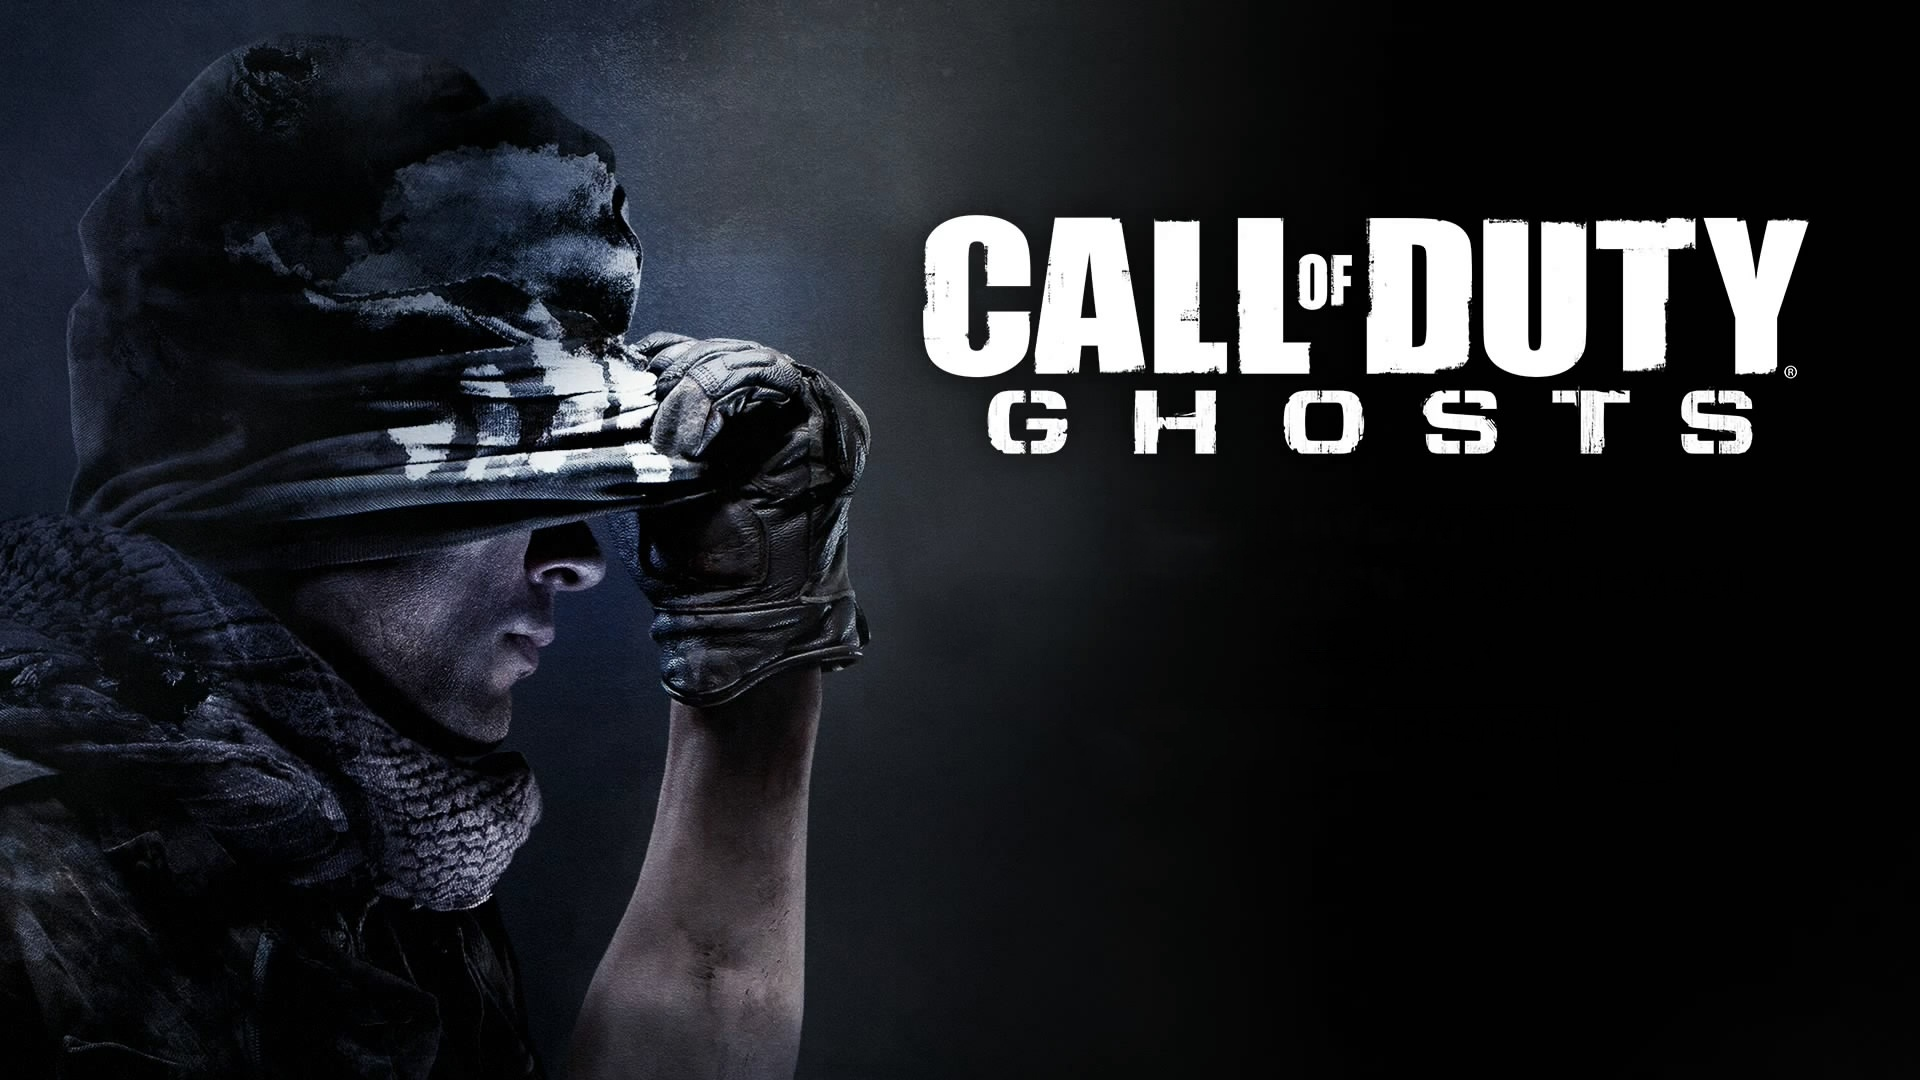 Call Of Duty Ghosts Wallpapers In Jpg Format For Free Download